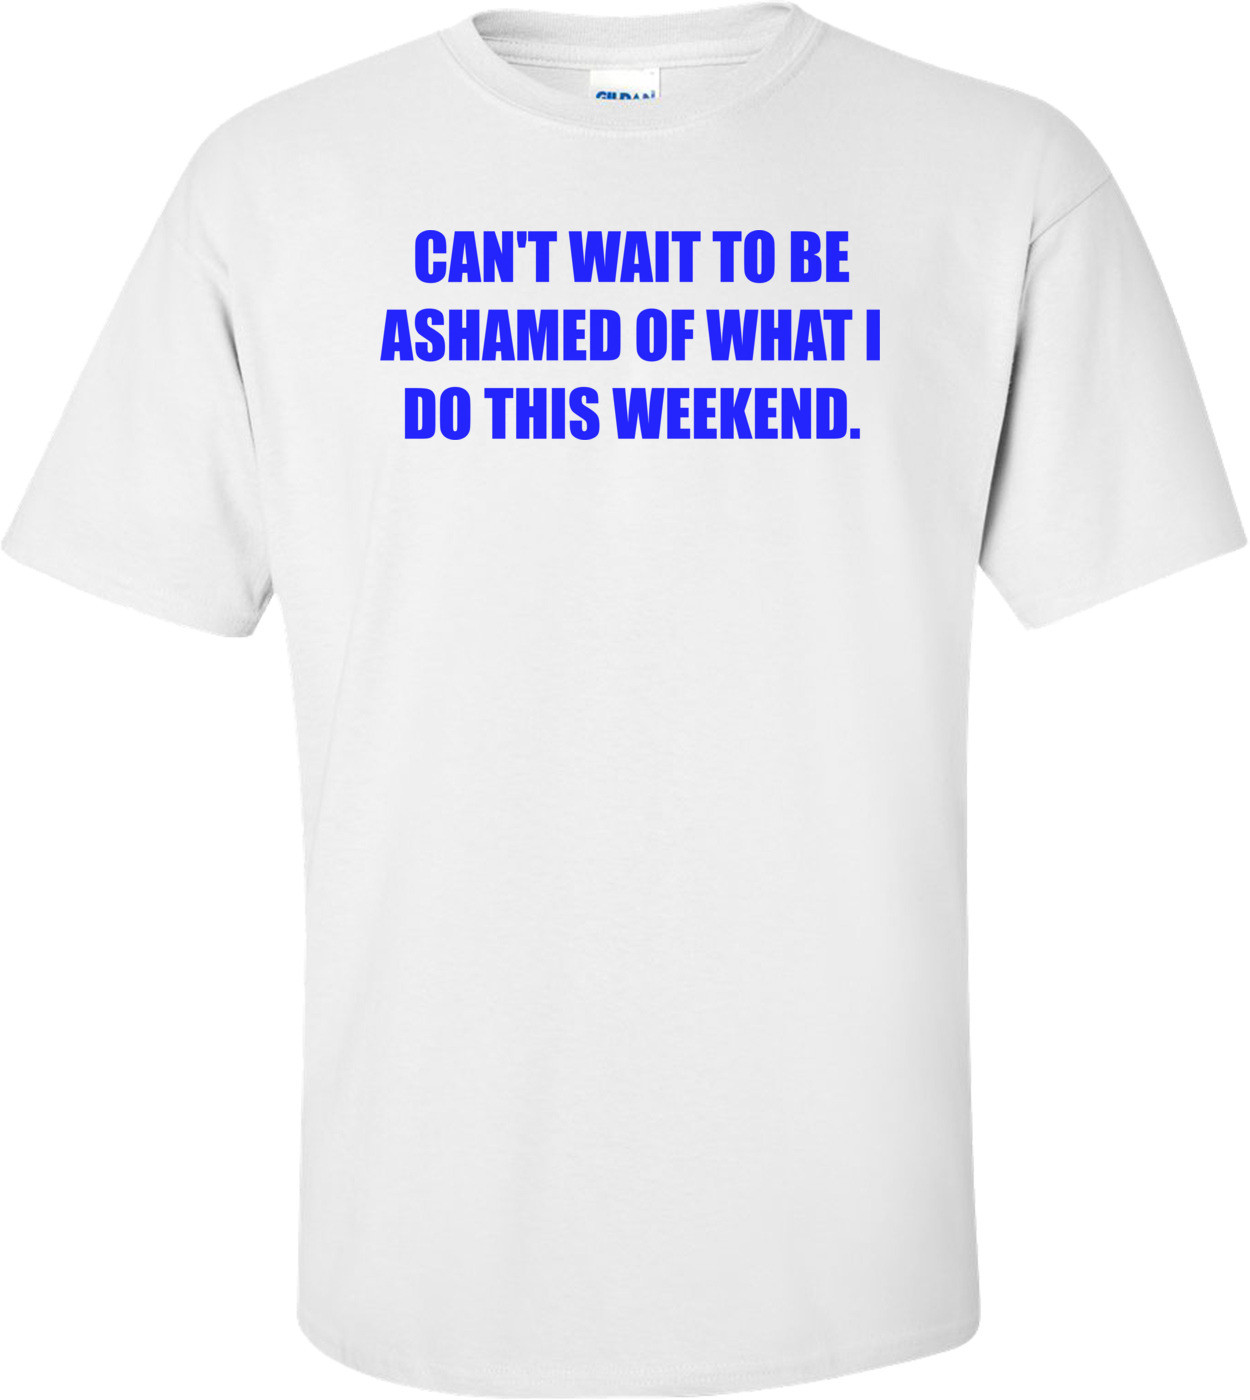 CAN'T WAIT TO BE ASHAMED OF WHAT I DO THIS WEEKEND. Shirt